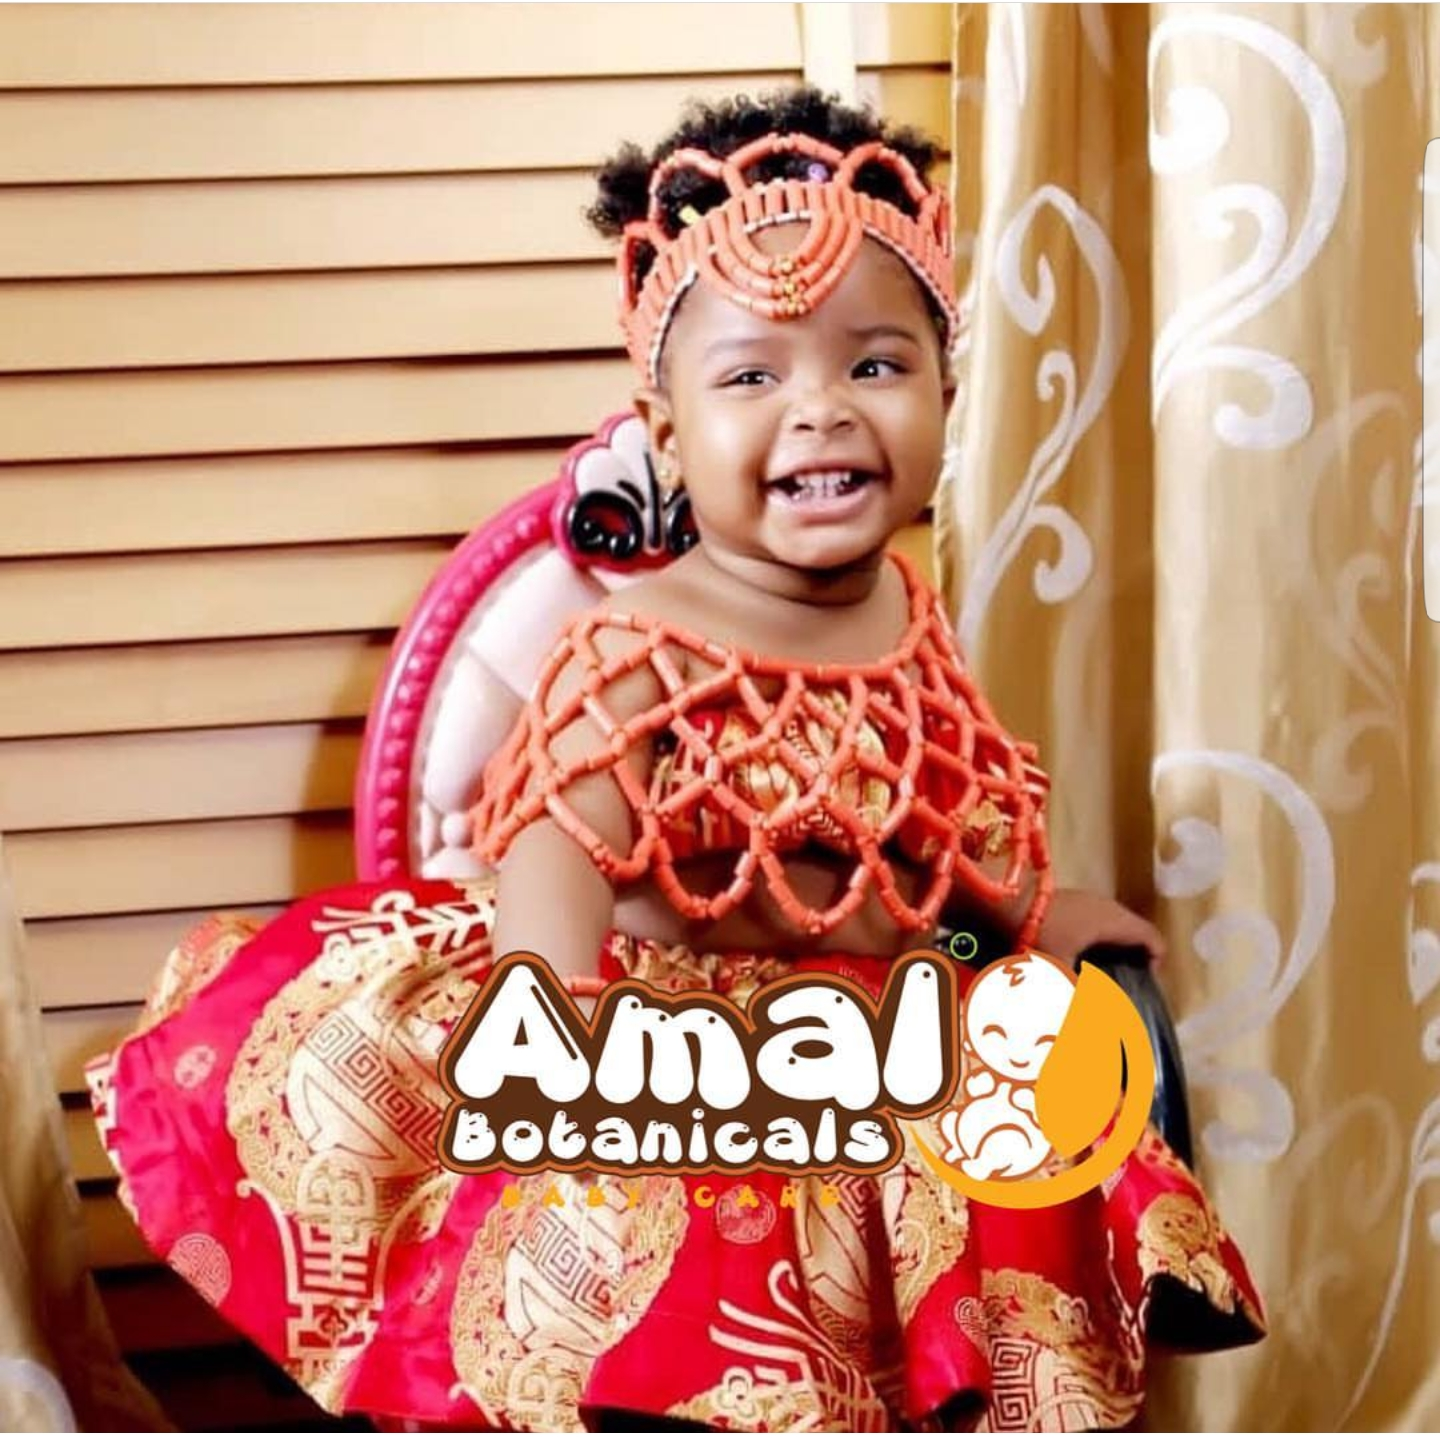 Our Amal Princess - She's been an Amal Baby since birth!